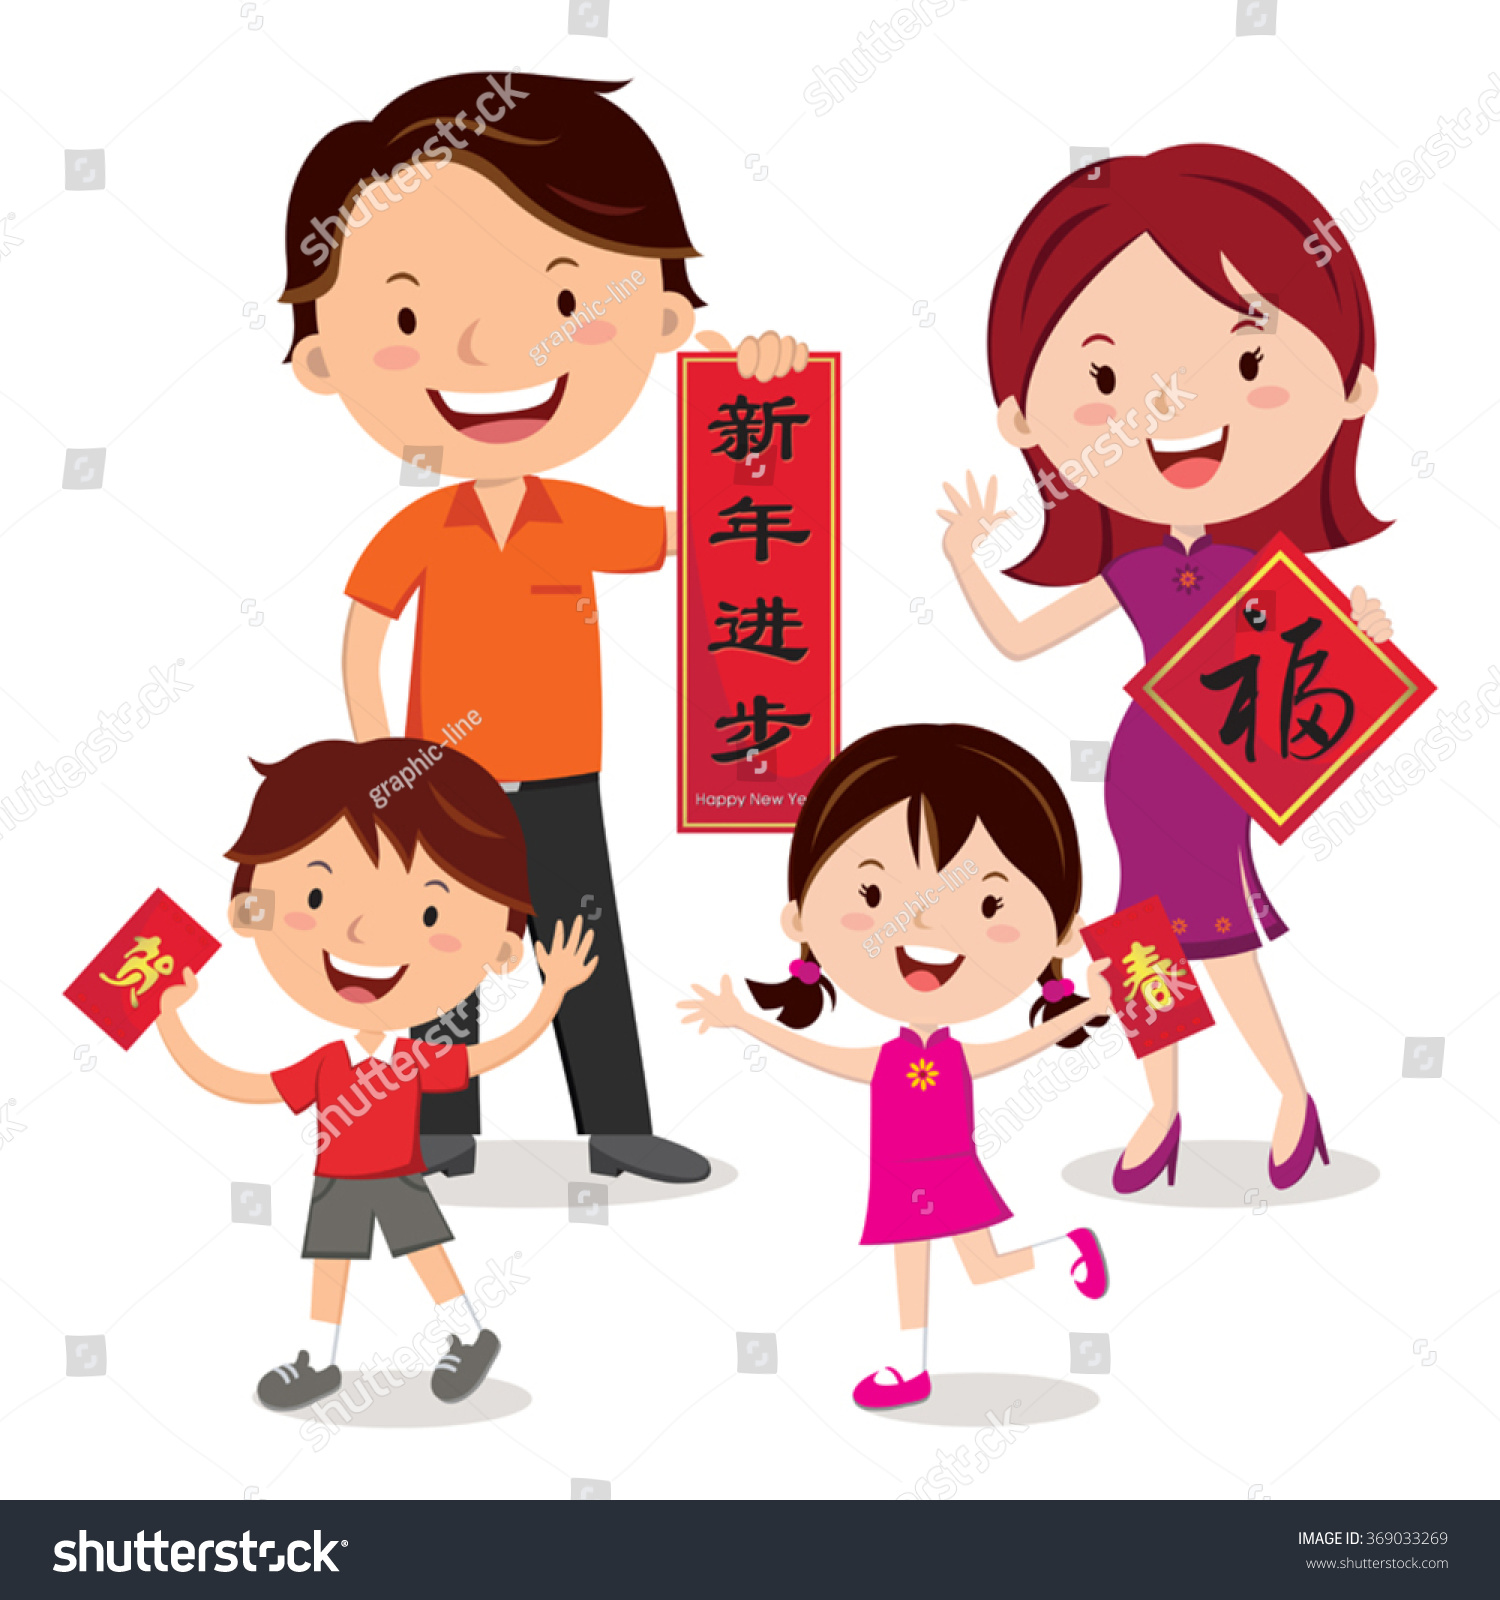 Family New Year Greeting Calligraphy Typography Stock Vector